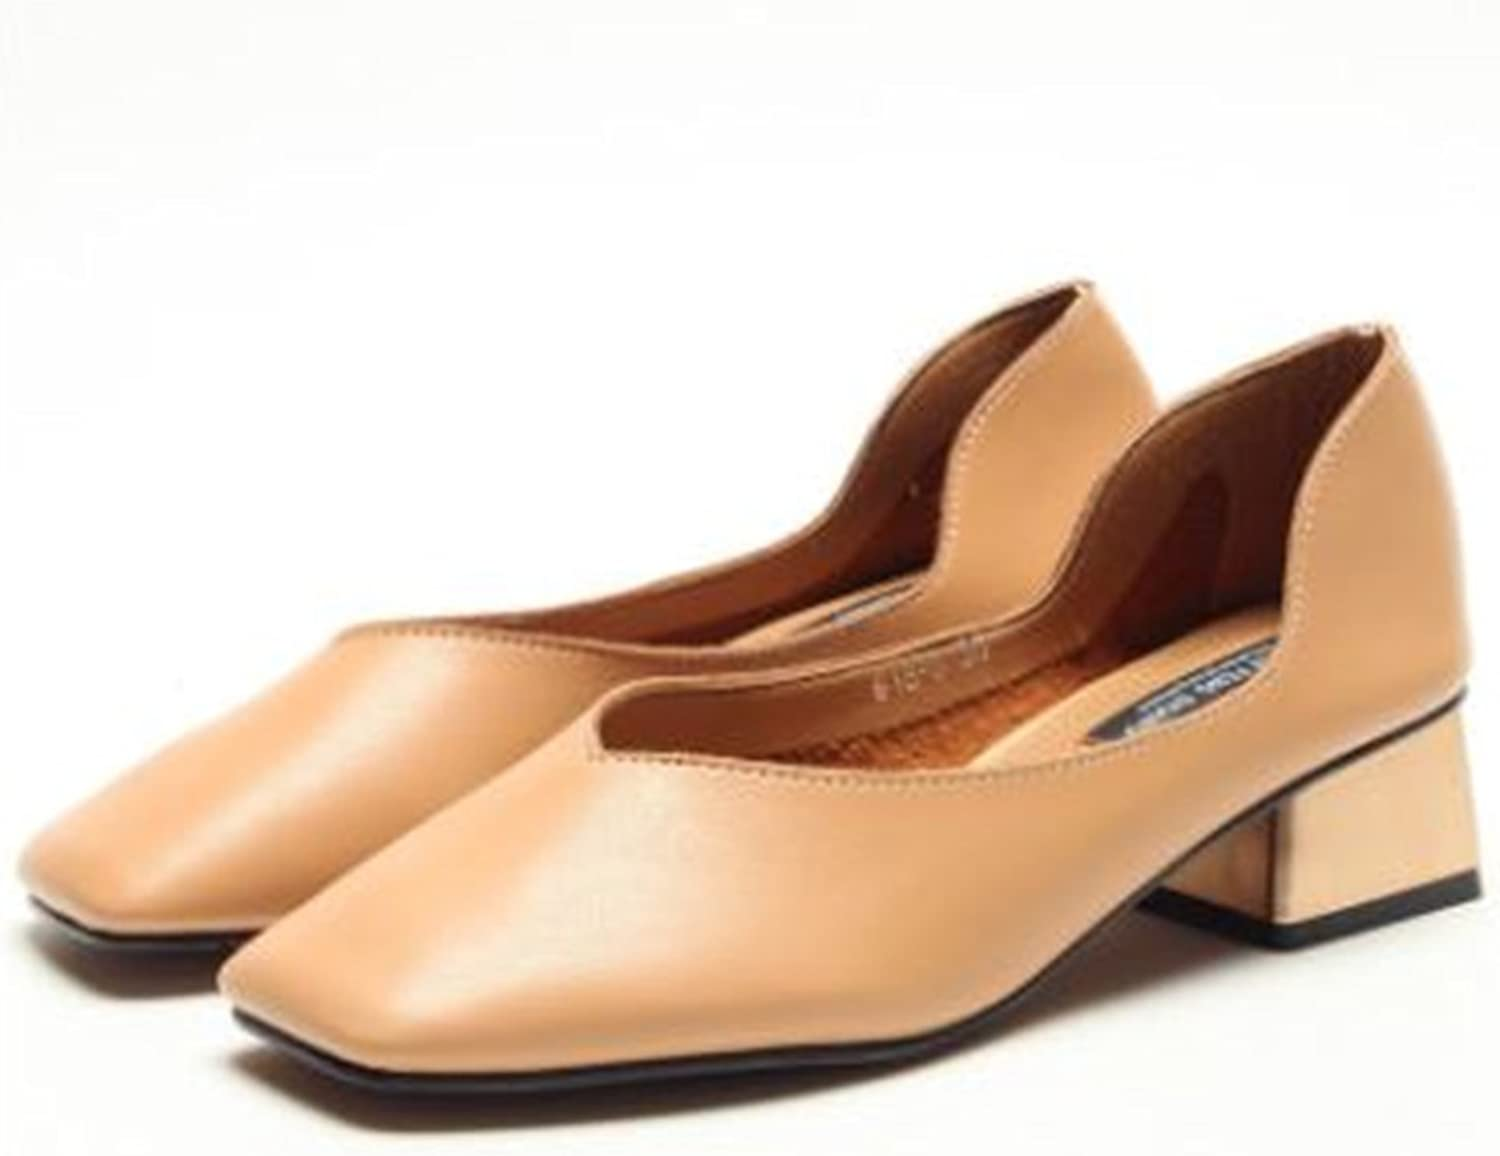 Women's Classic Squared Toe Ballet Slip On Flats shoes